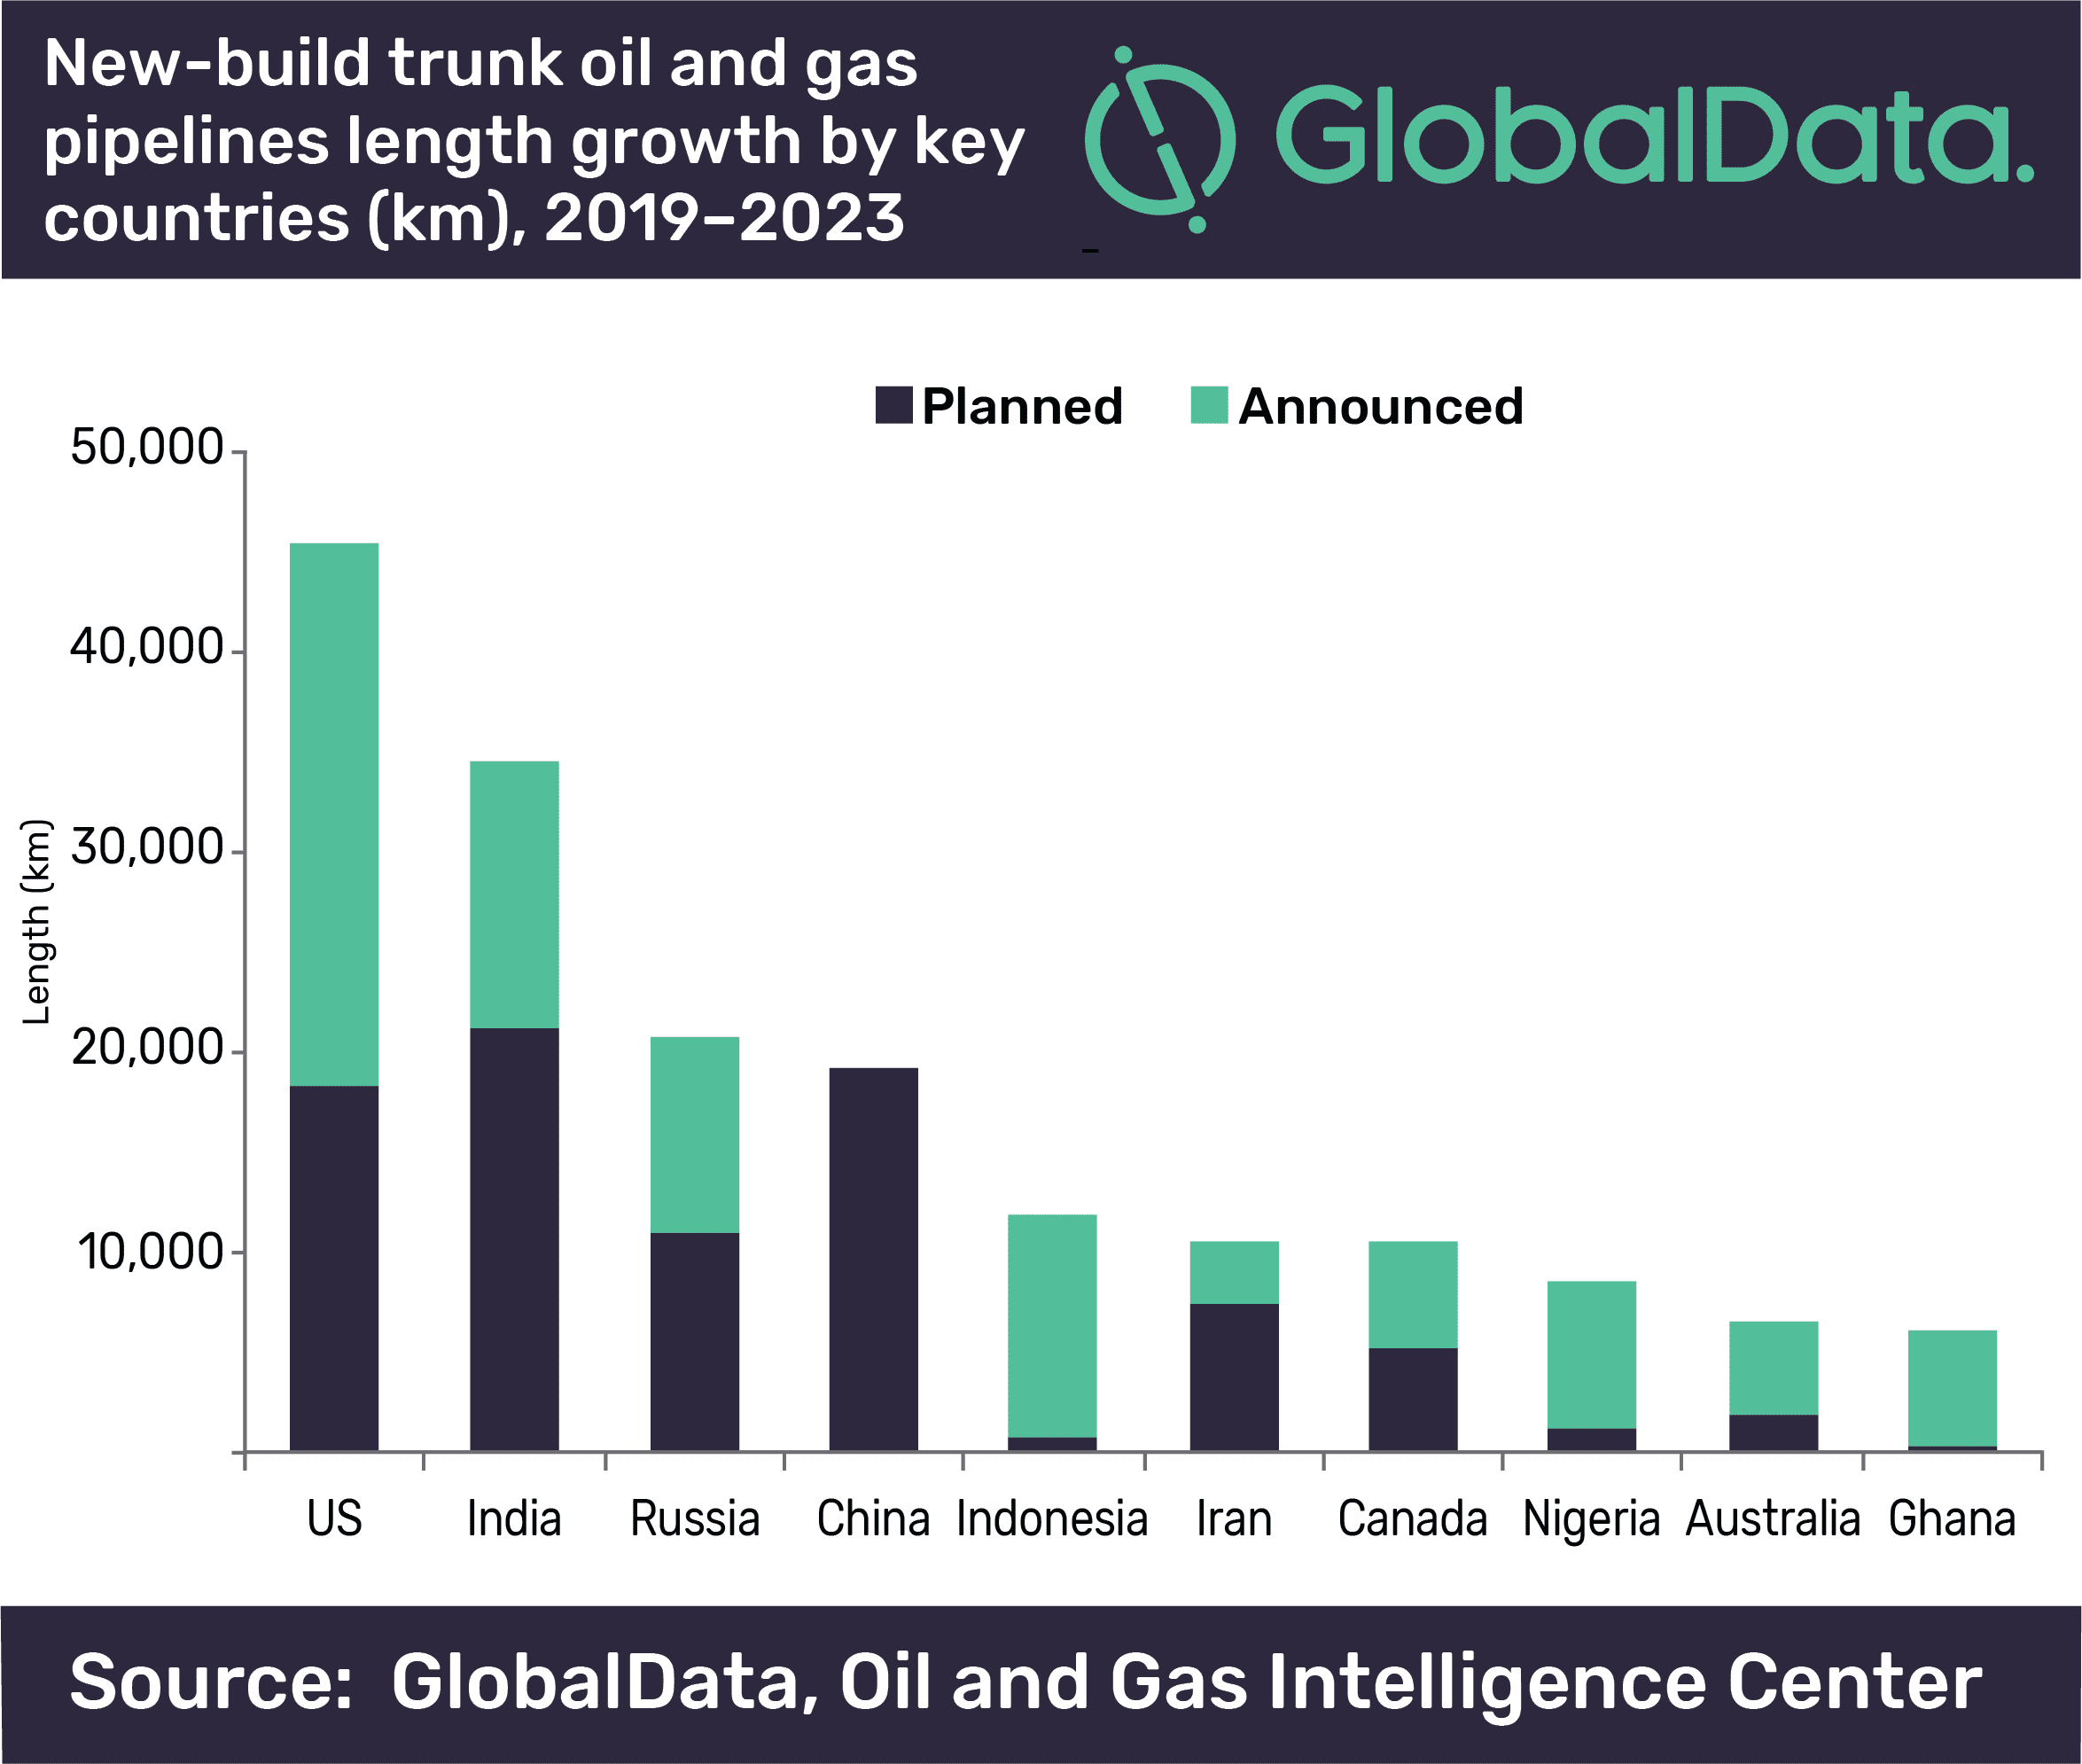 US leads globally on new-build trunk oil and gas pipeline additions by 2023